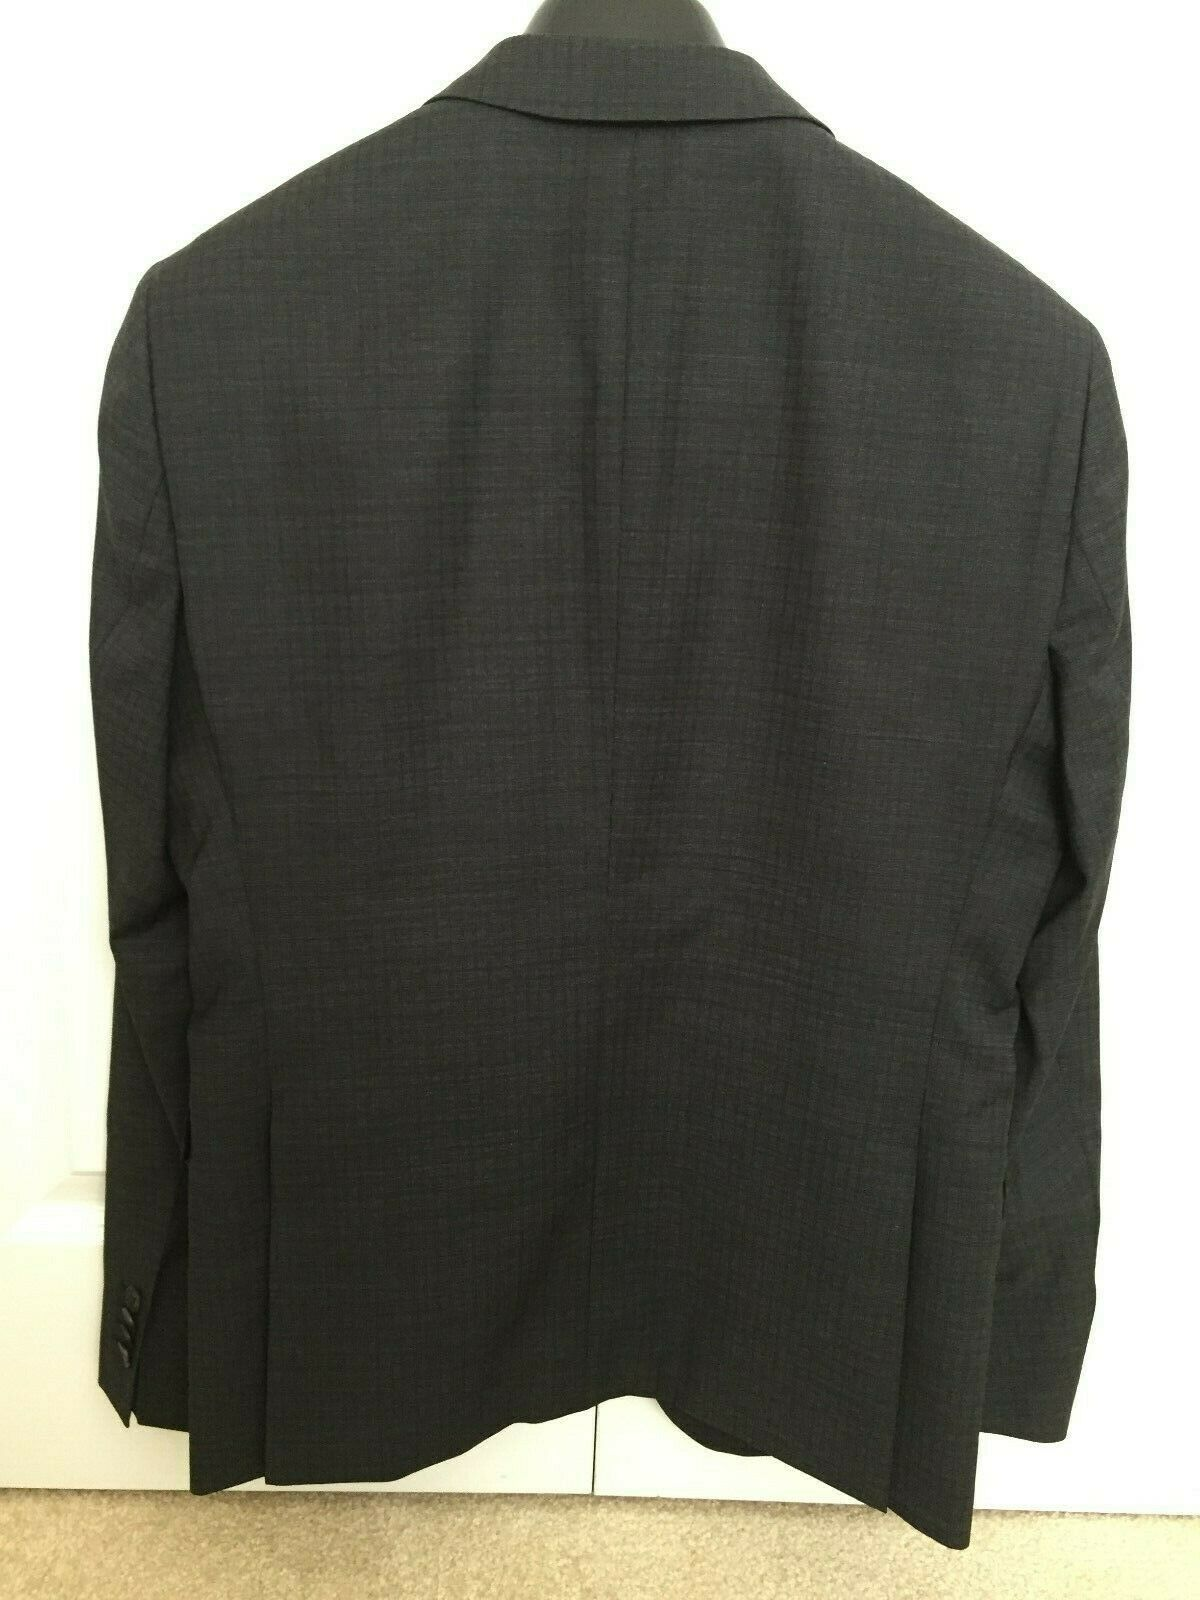 Hugo Boss Suit Jacket - image 3